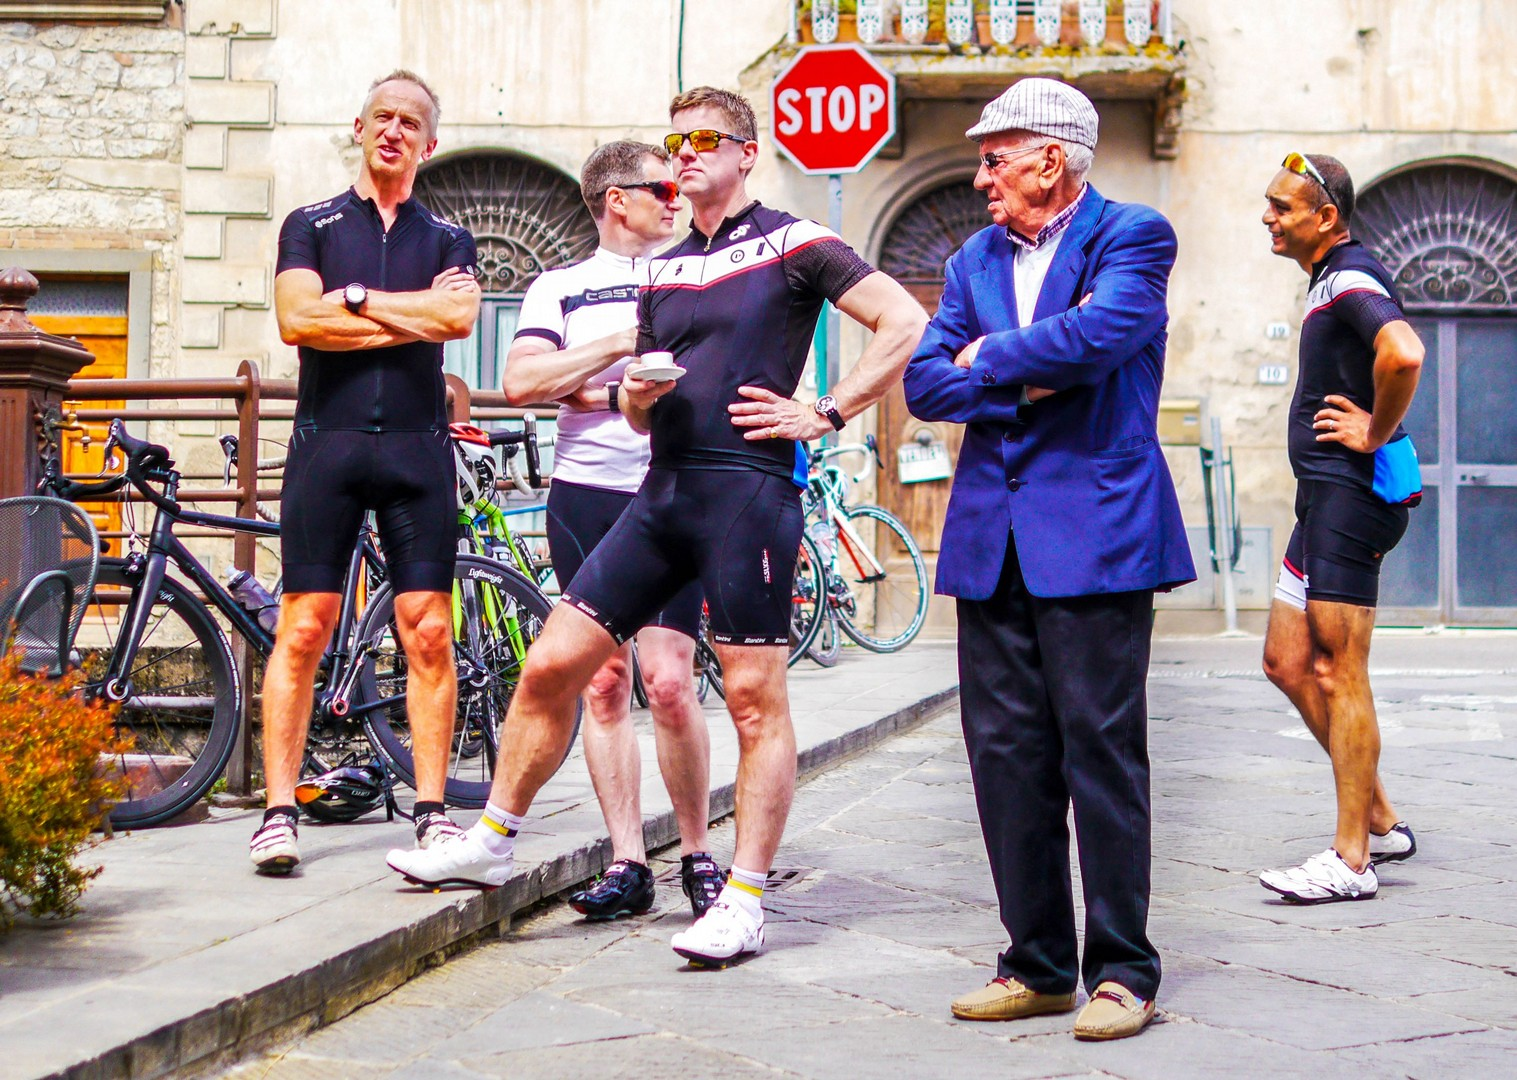 New member of the team.jpg - Italy - Tuscany - Giro della Toscana - Guided Road Cycling Holiday - Road Cycling